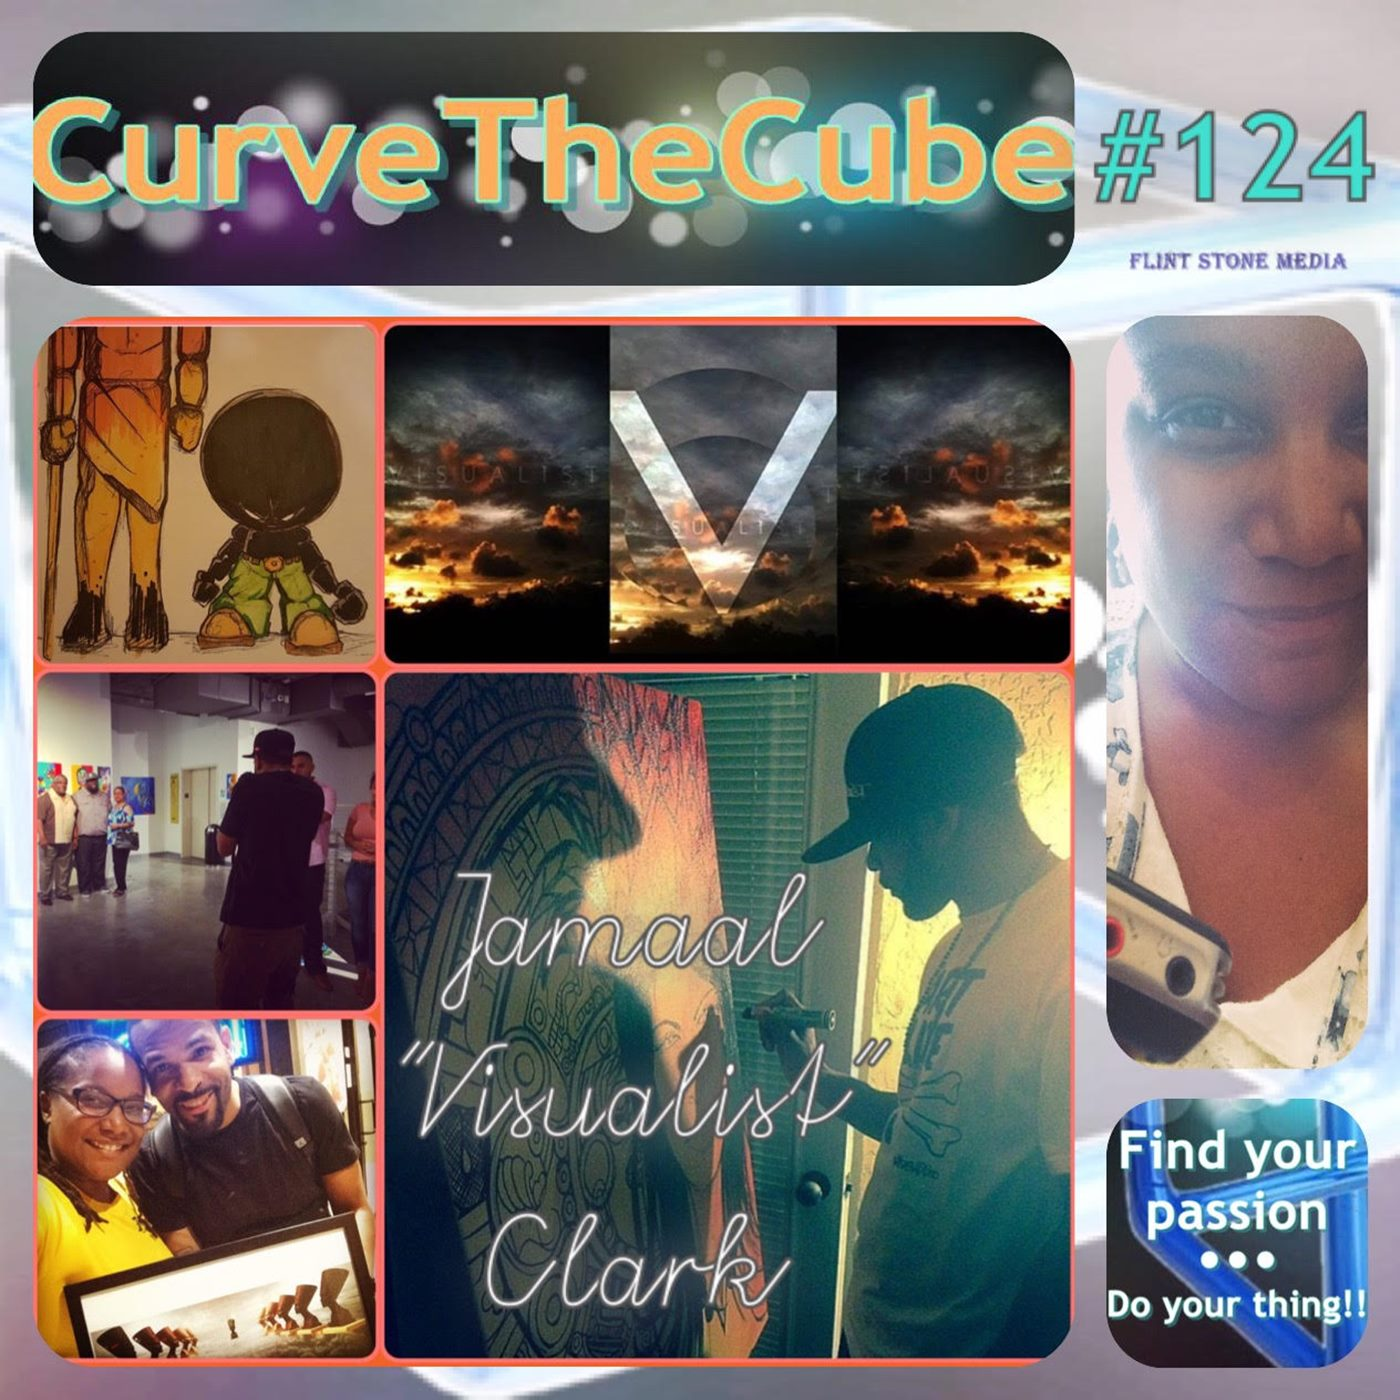 "Jamaal ""Visualist"" Clark on His Second Curve the Cube Podcast Appearance"